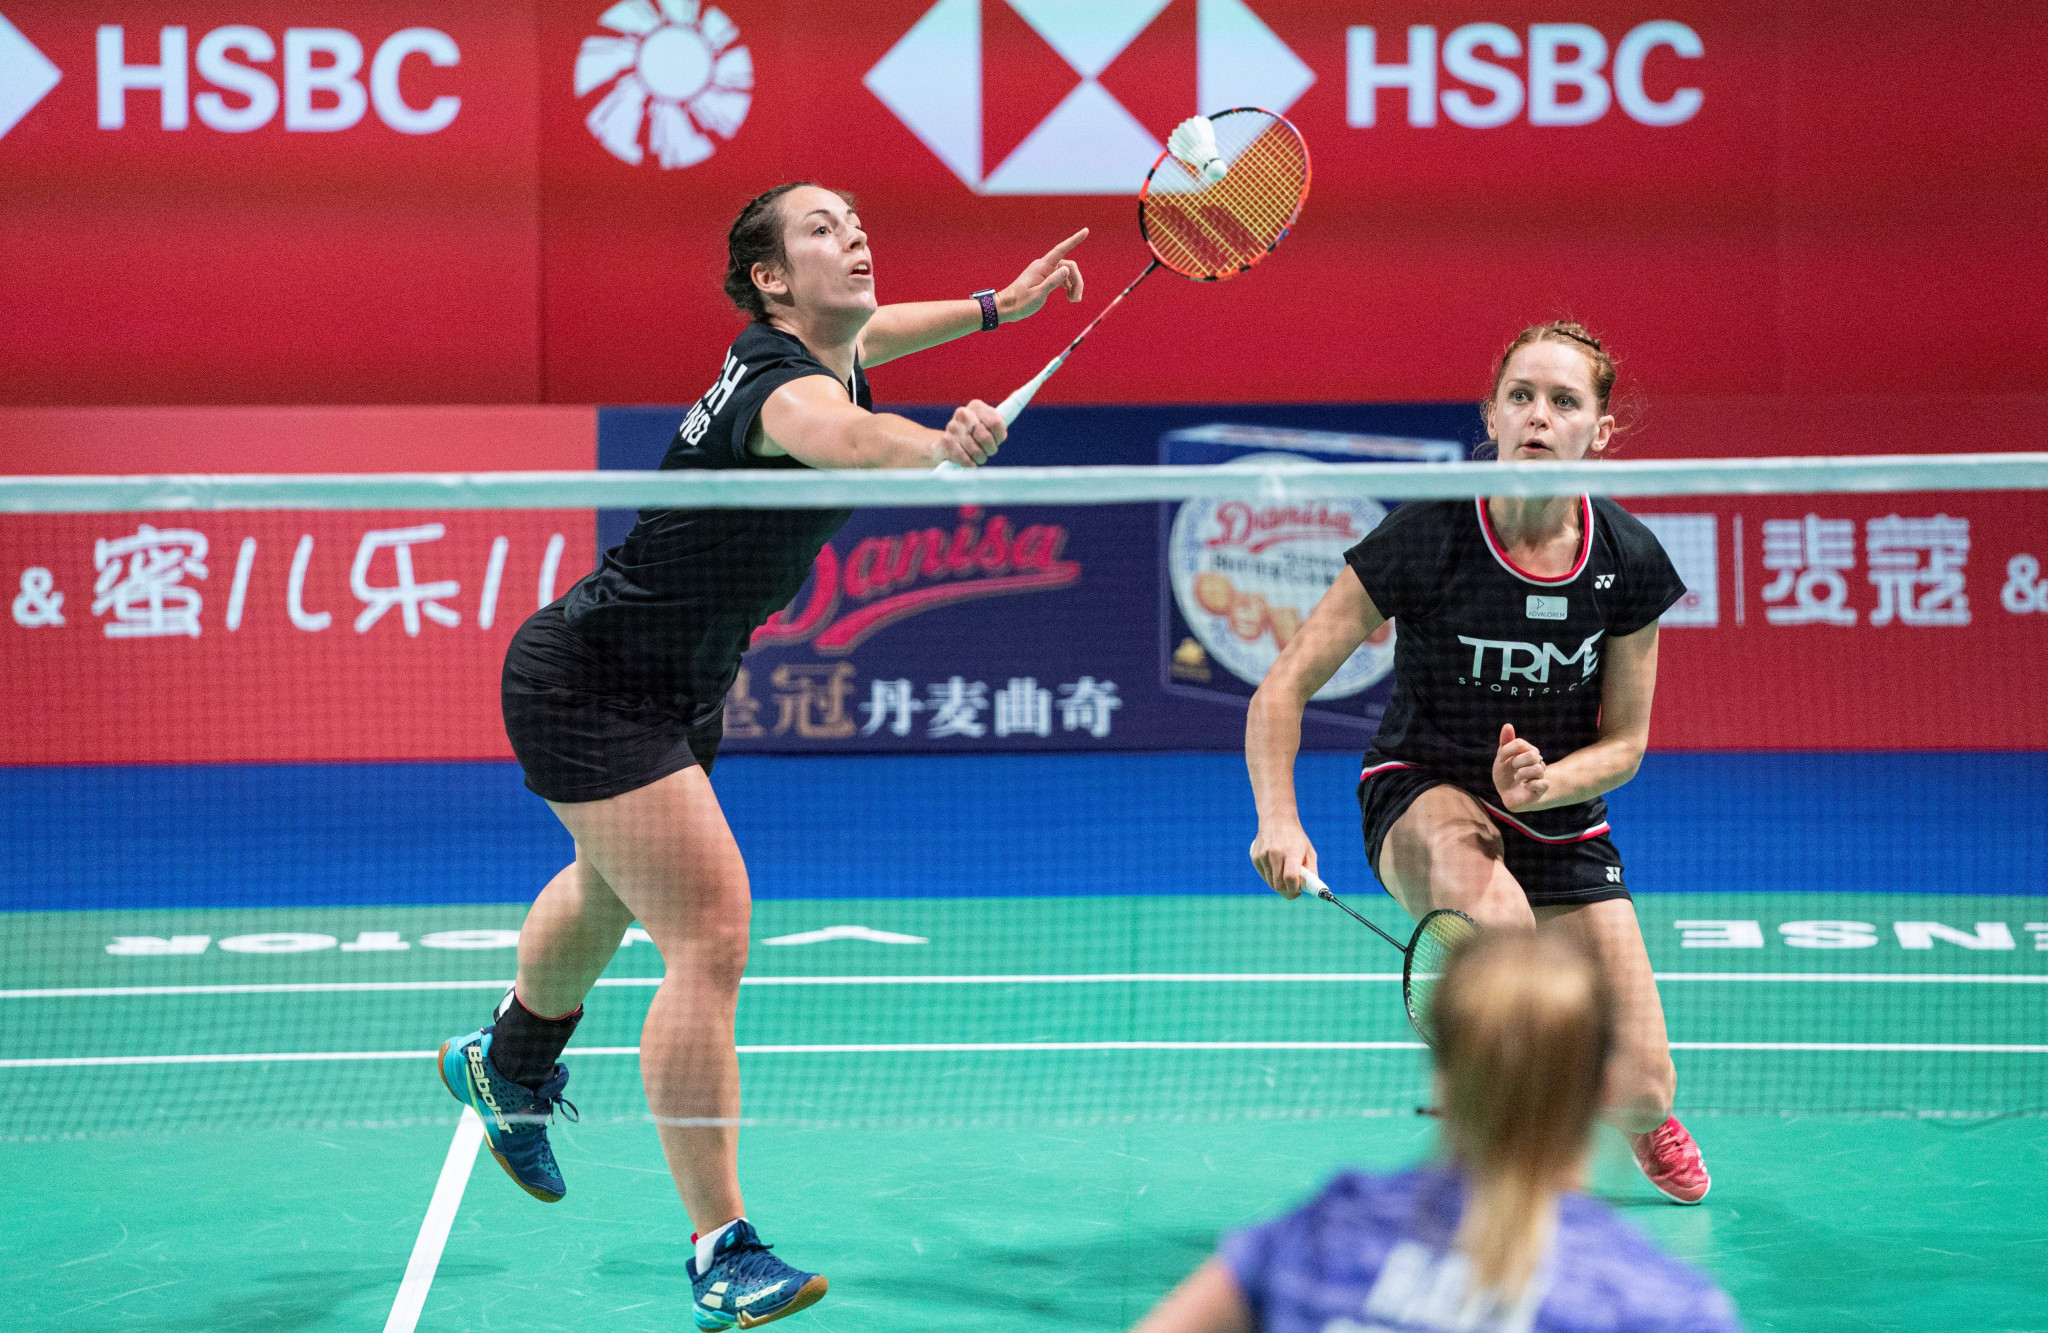 Women's doubles fourth seeds Chloe Birch and Lauren Smith were eliminated in the opening round  ©Getty Images